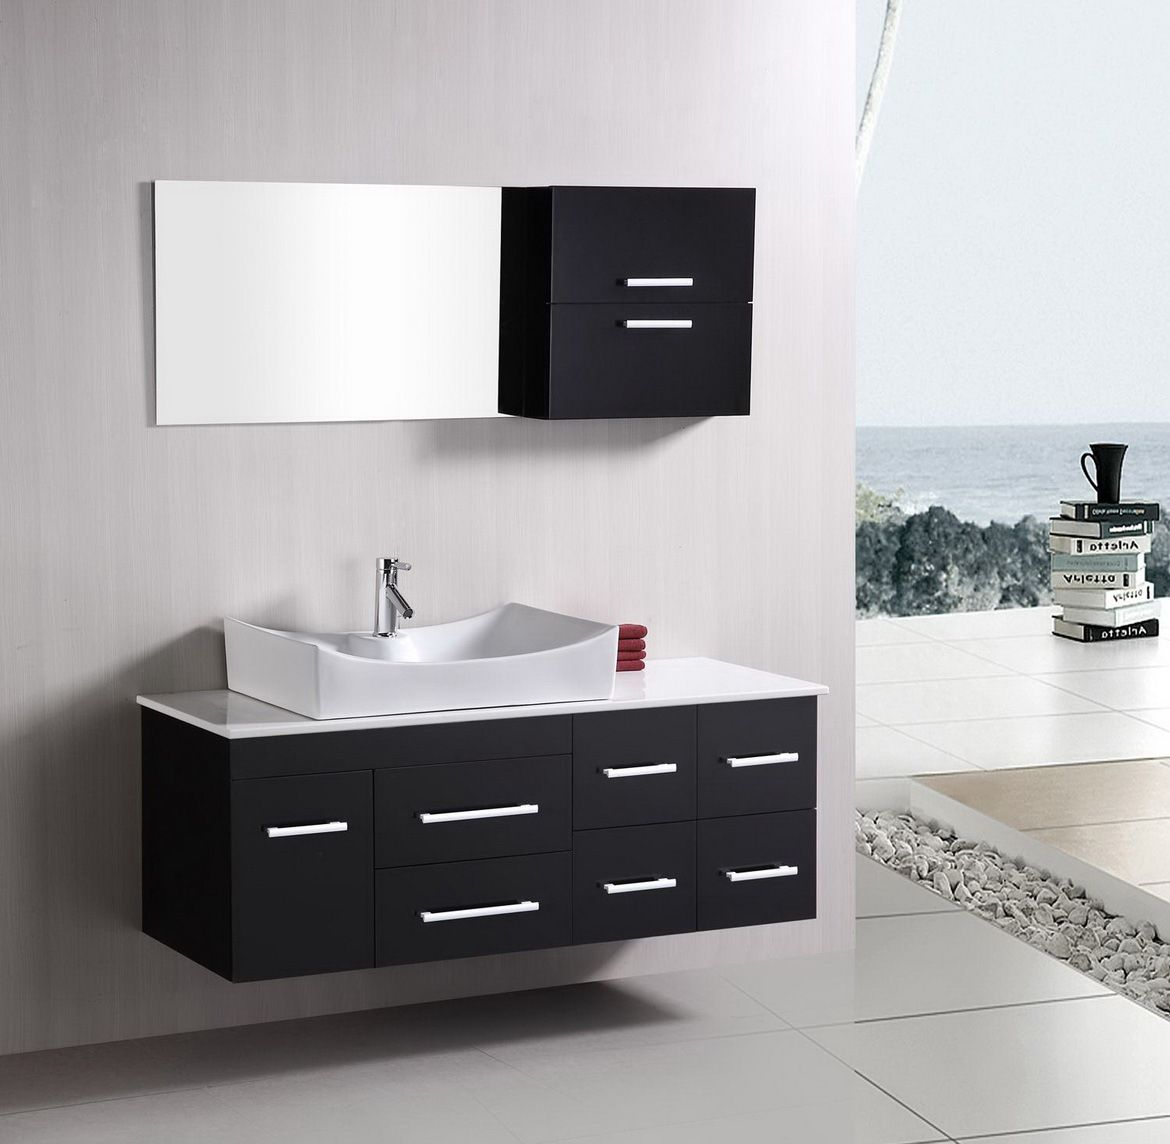 Small contemporary bathroom vanities design ideas for for Bathroom vanity designs images